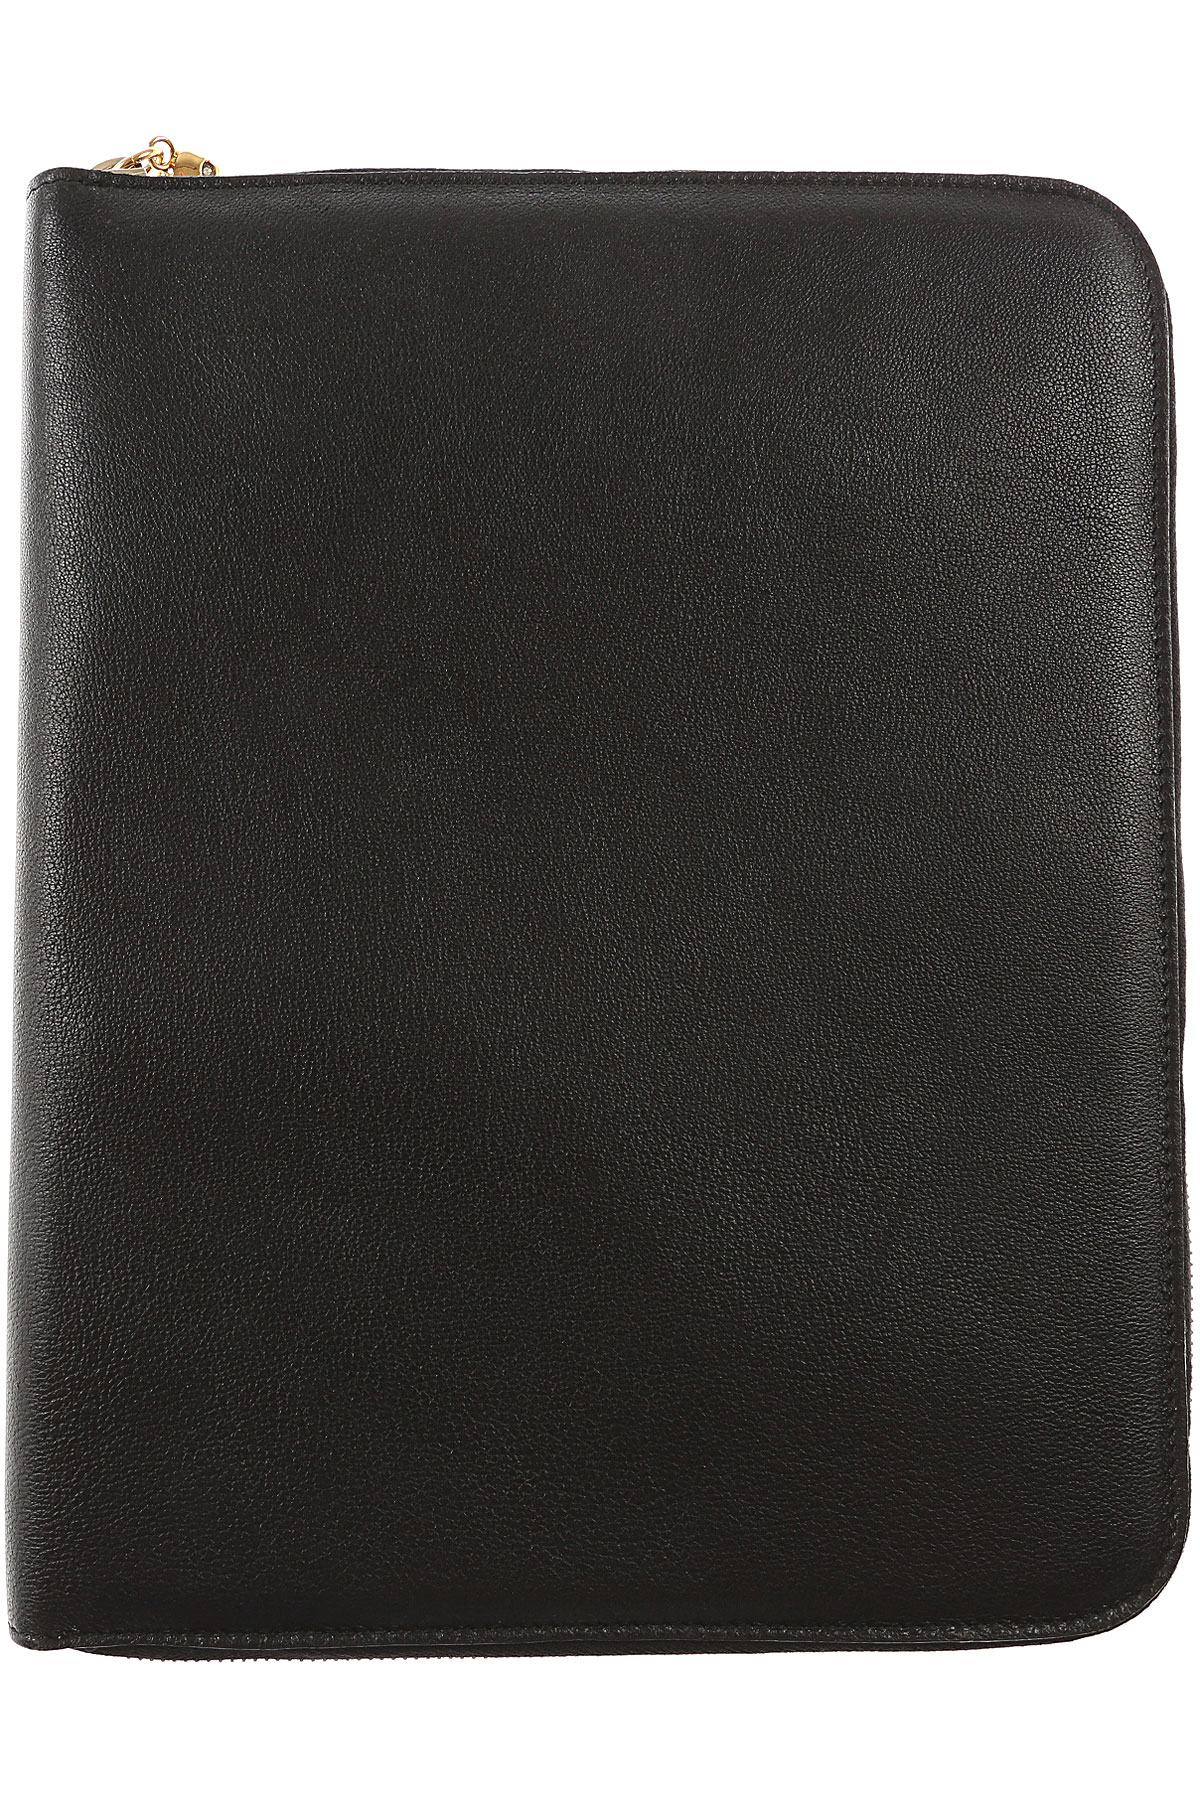 Image of Alexander McQueen Briefcases On Sale in Outlet, Ipad 2 Case, Black, Leather, 2017